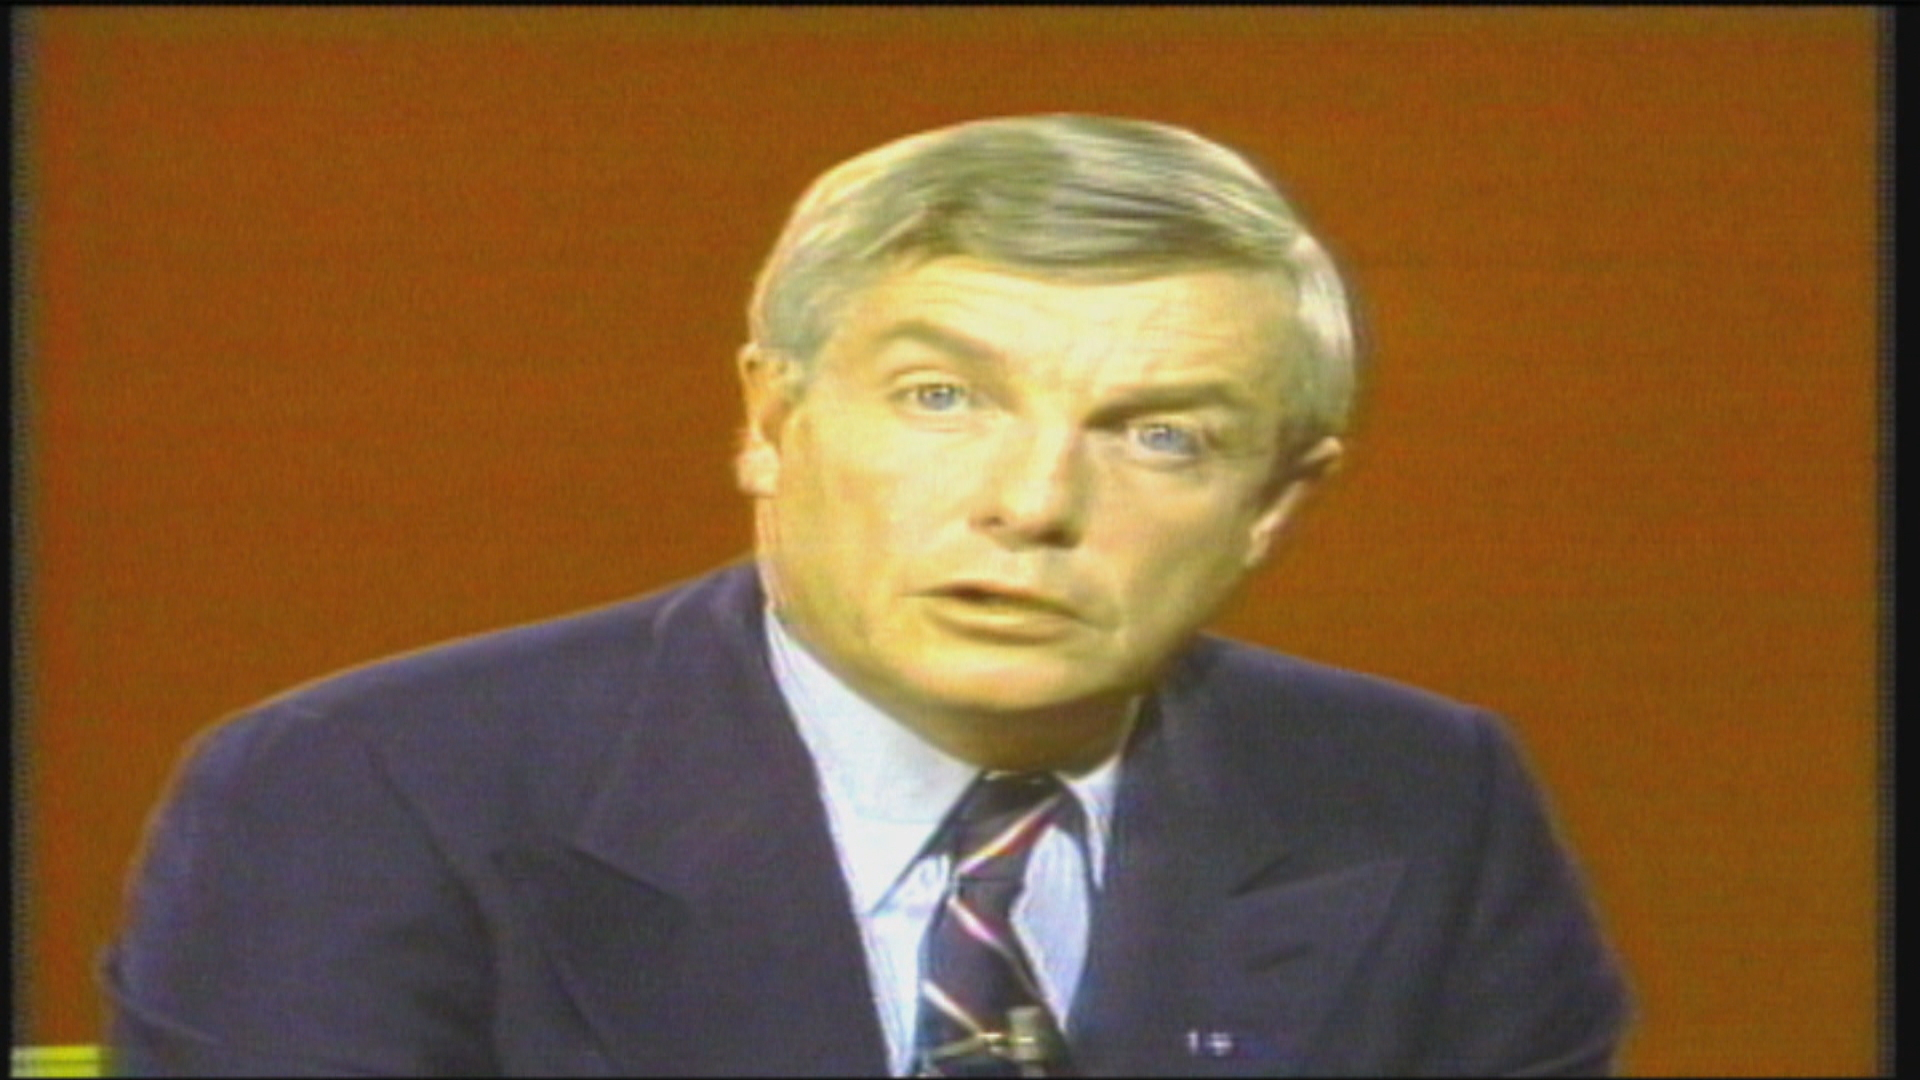 Peter Lougheed took to the airwaves 48 hours after the NEP was announced to say he was turning down the taps. Photo: The Journal/CBC